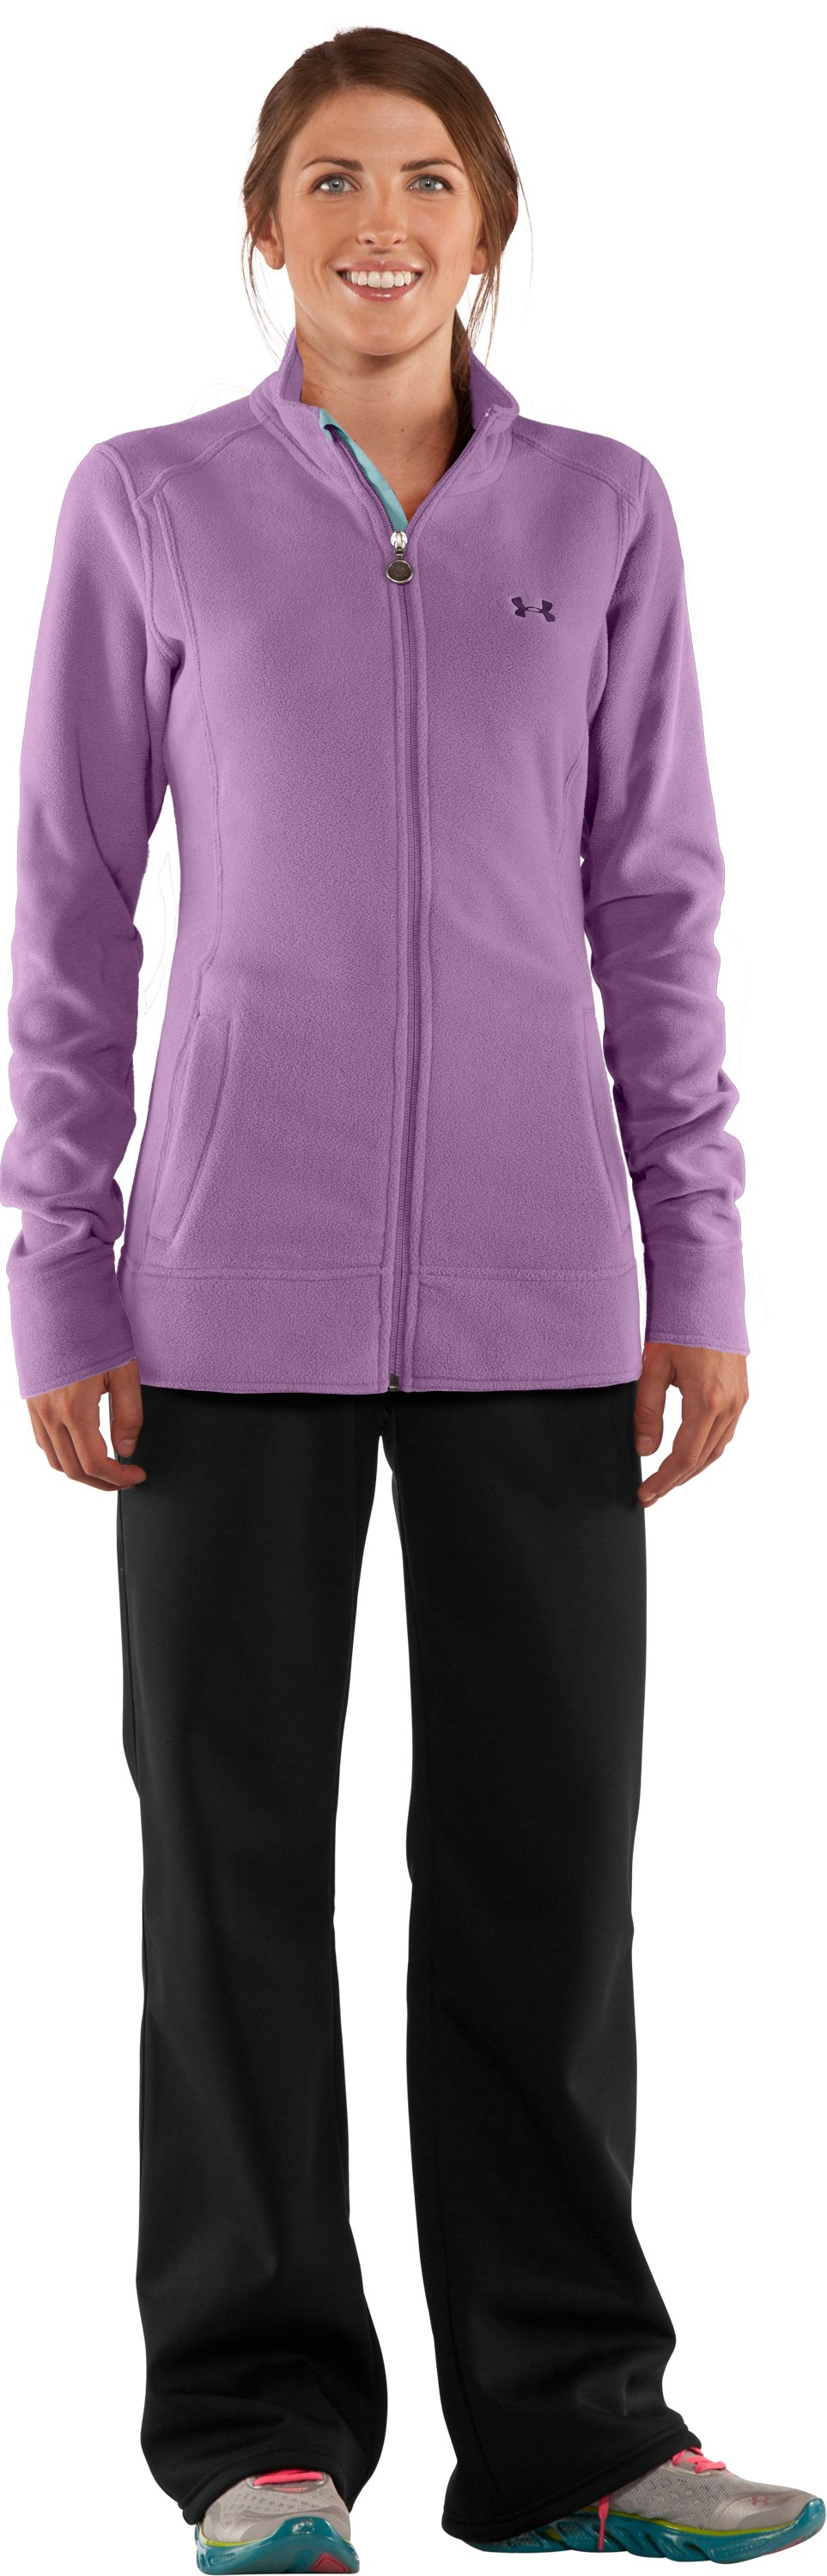 Women's Double Hundo® Full Zip Fleece, Sugar Plum, Front